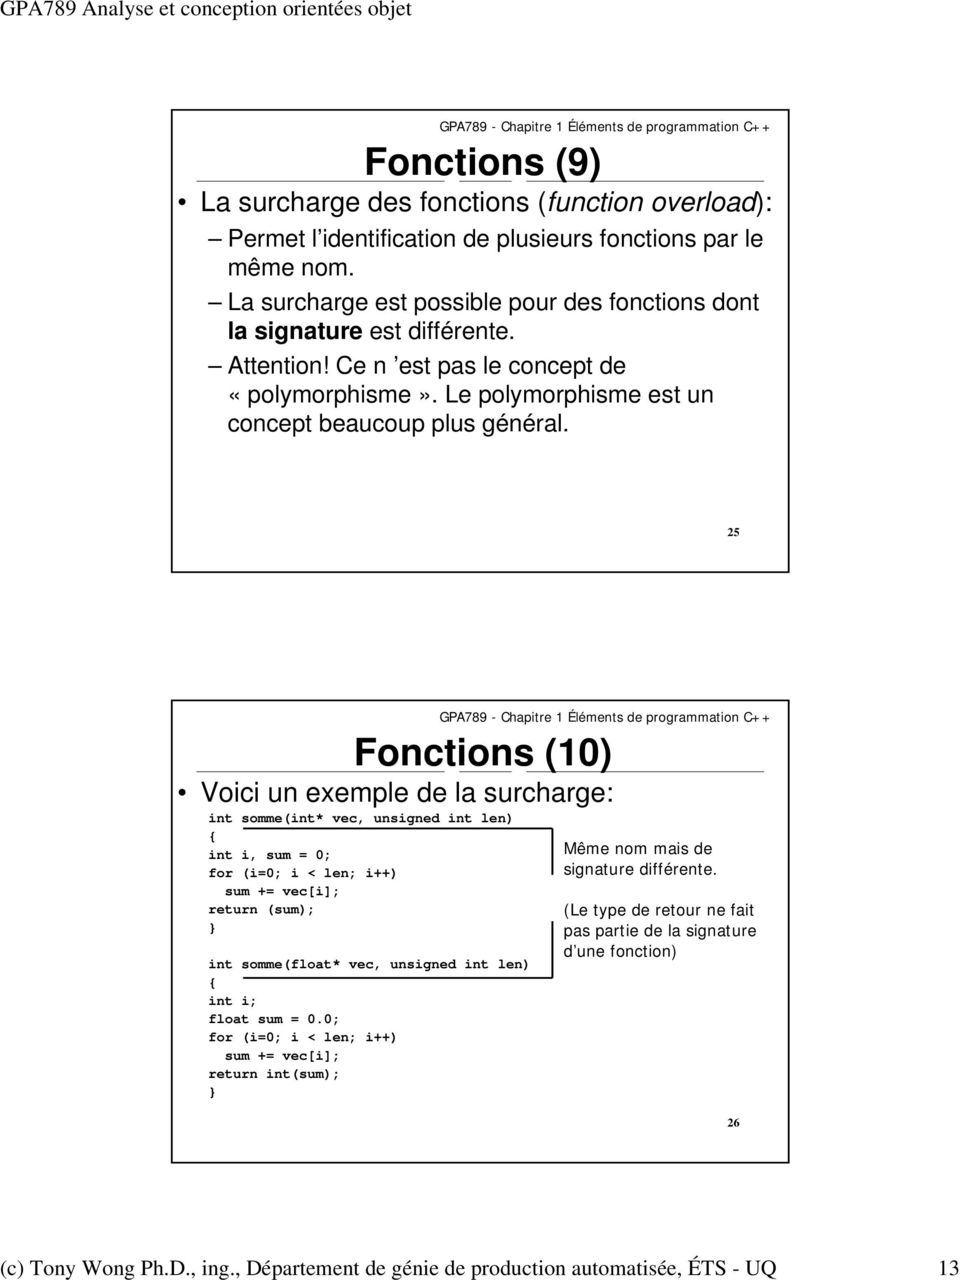 25 Fonctions (10) Voici un exemple de la surcharge: int somme(int* vec, unsigned int len) { int i, sum = 0; for (i=0; i < len; i++) sum += vec[i]; return (sum); } int somme(float* vec, unsigned int